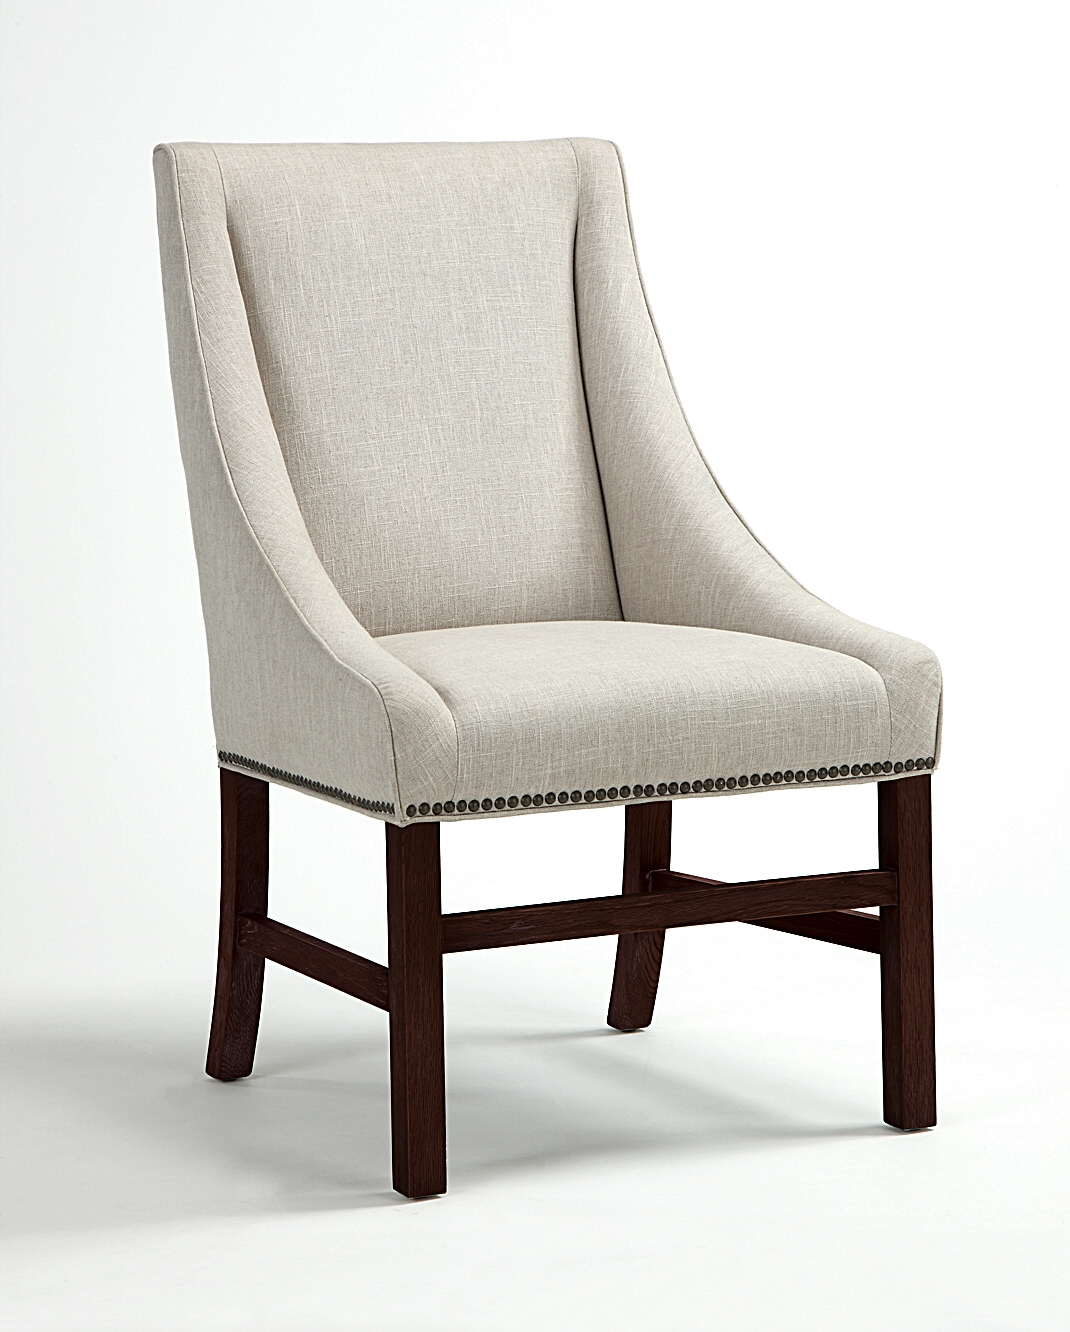 ... -Furniture-Cavallini-Upholstered-Dining-Chair-Dining-Chair_0_0.jpg